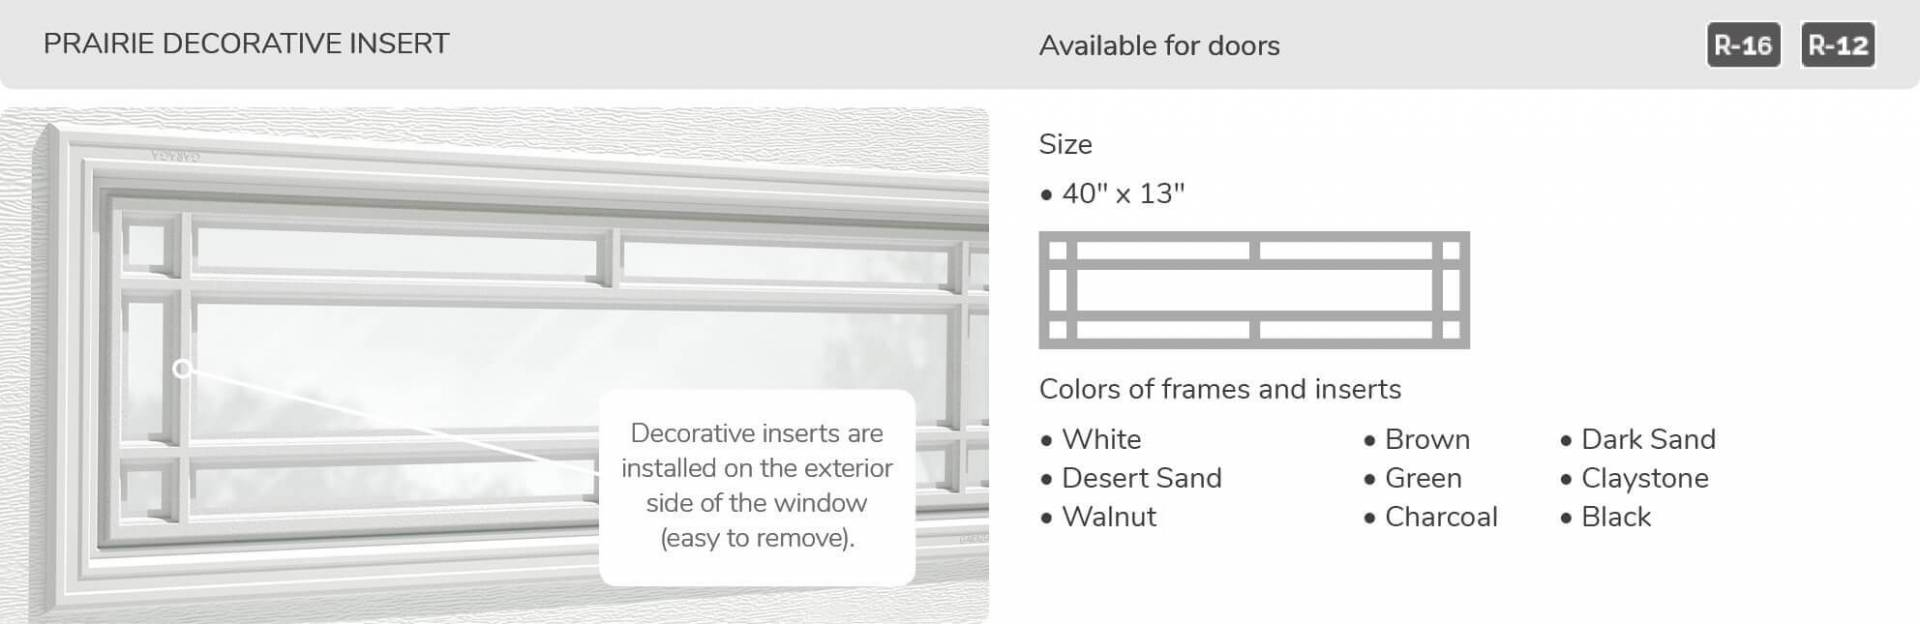 Prairie Decorative Insert, 40' x 13', available for doors R-16 and R-12